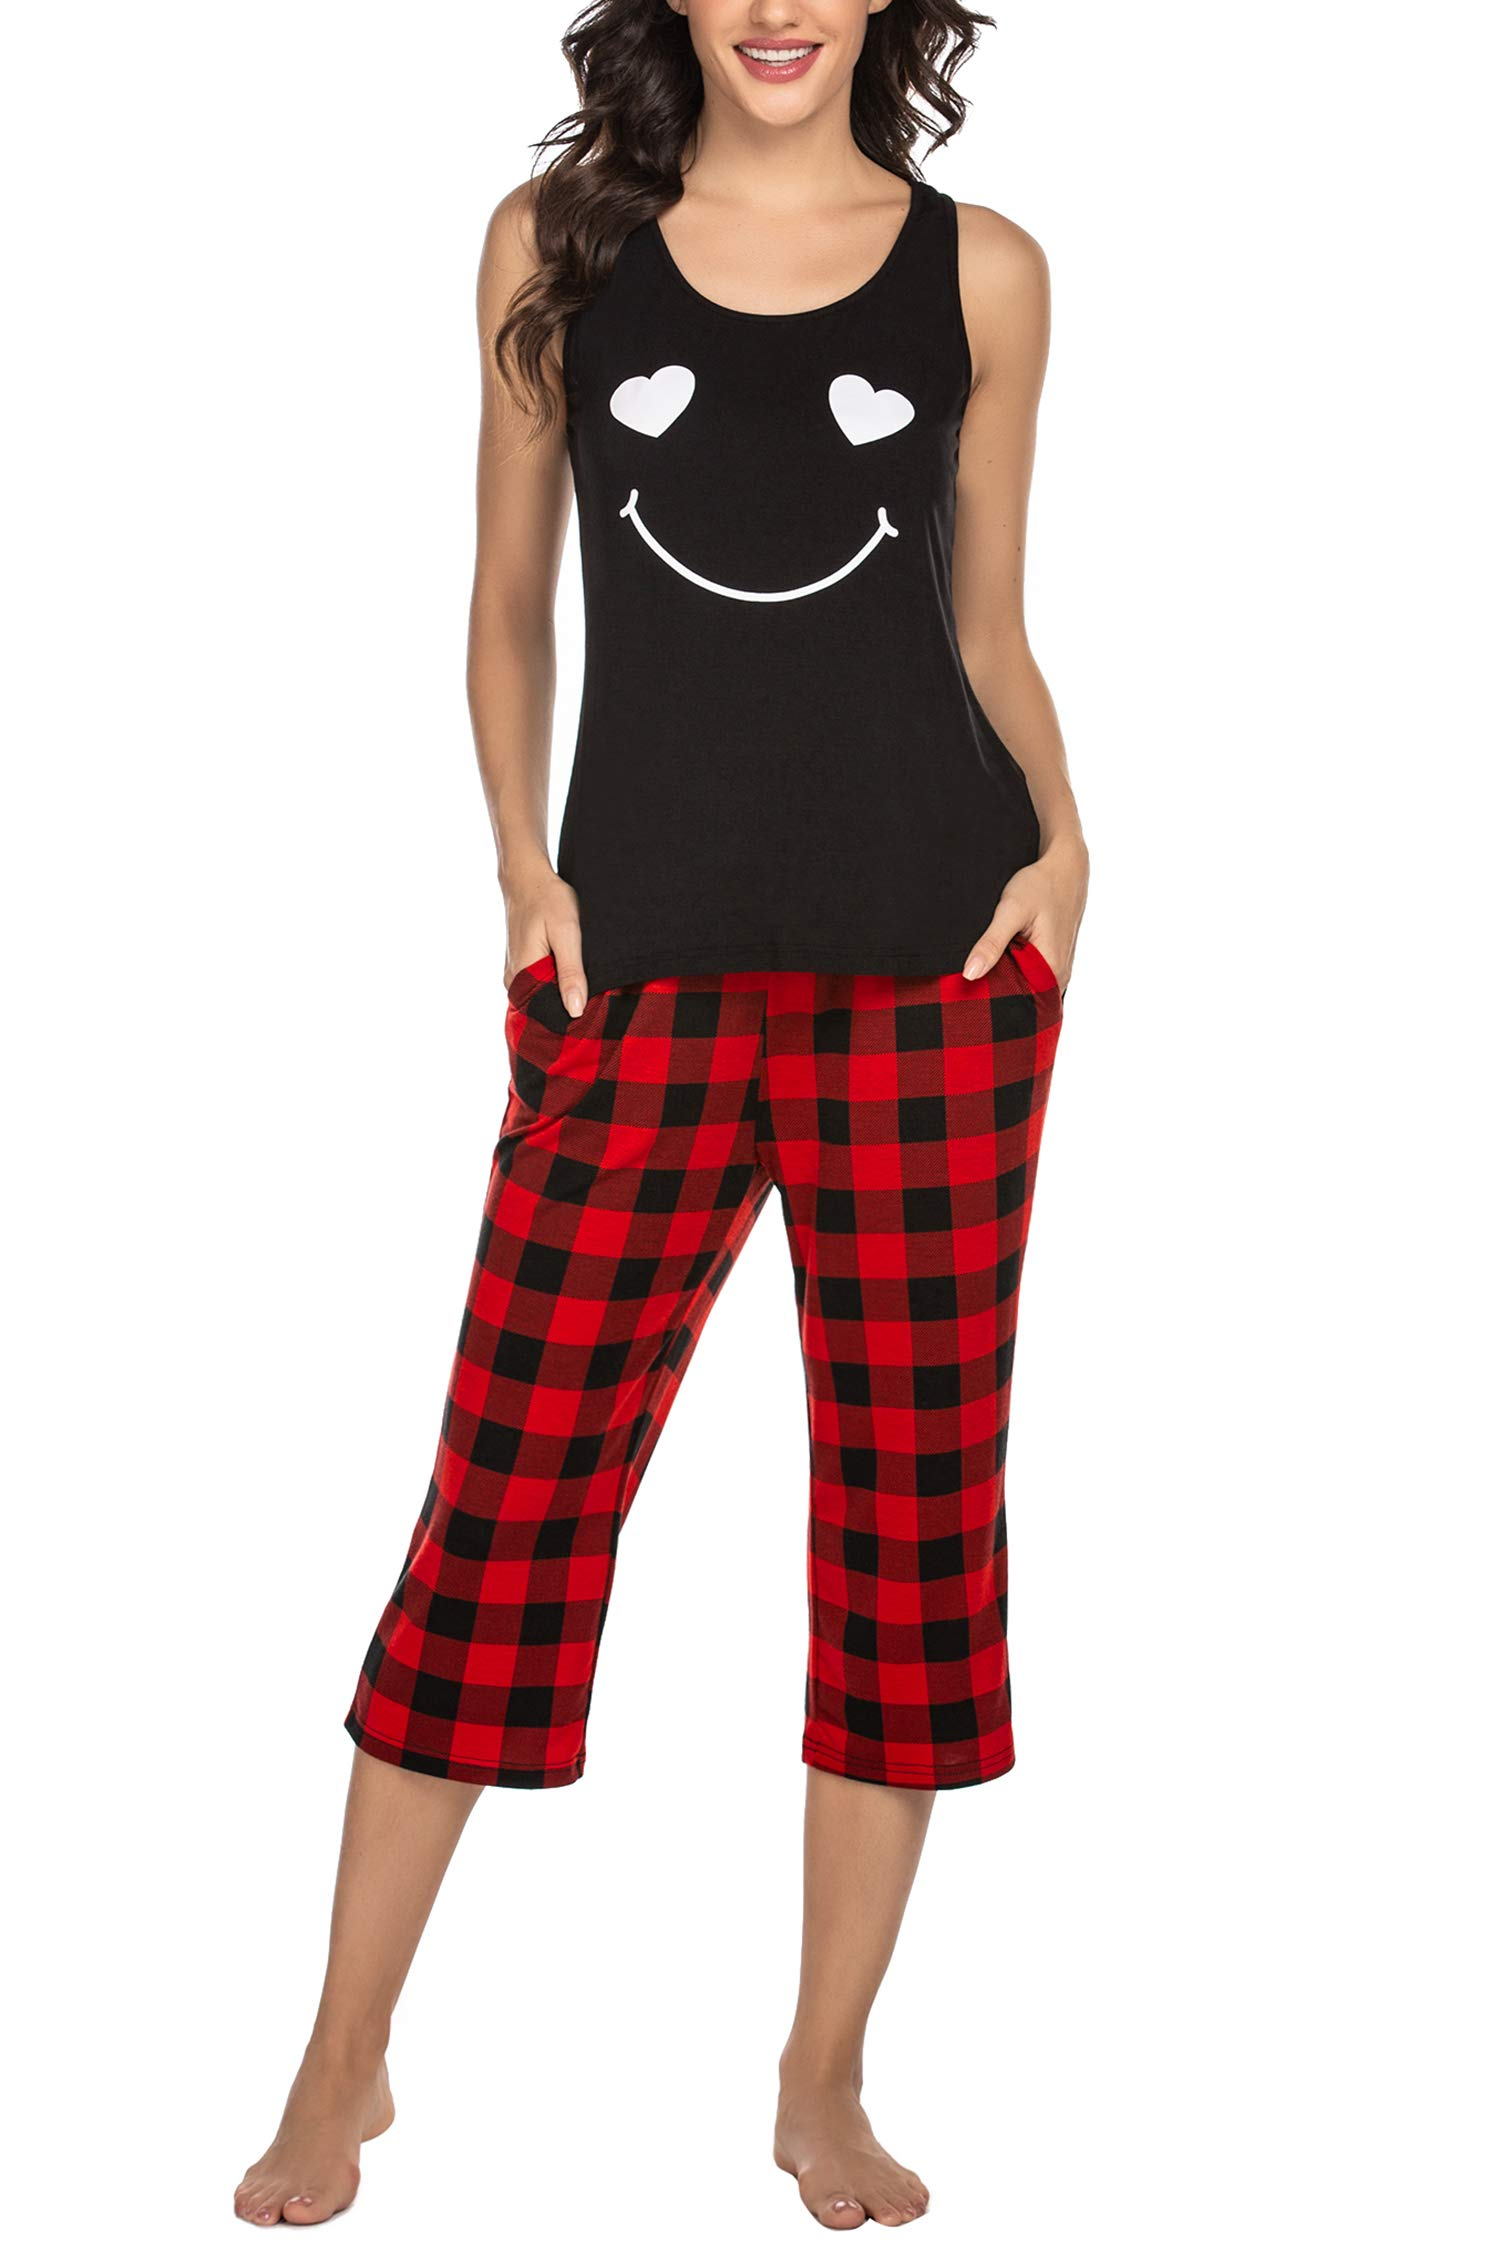 Hotouch Women's Capri Pajama Set Cute Tank Tops Sleepwear with Pocket Pants Soft PJS S-XXL